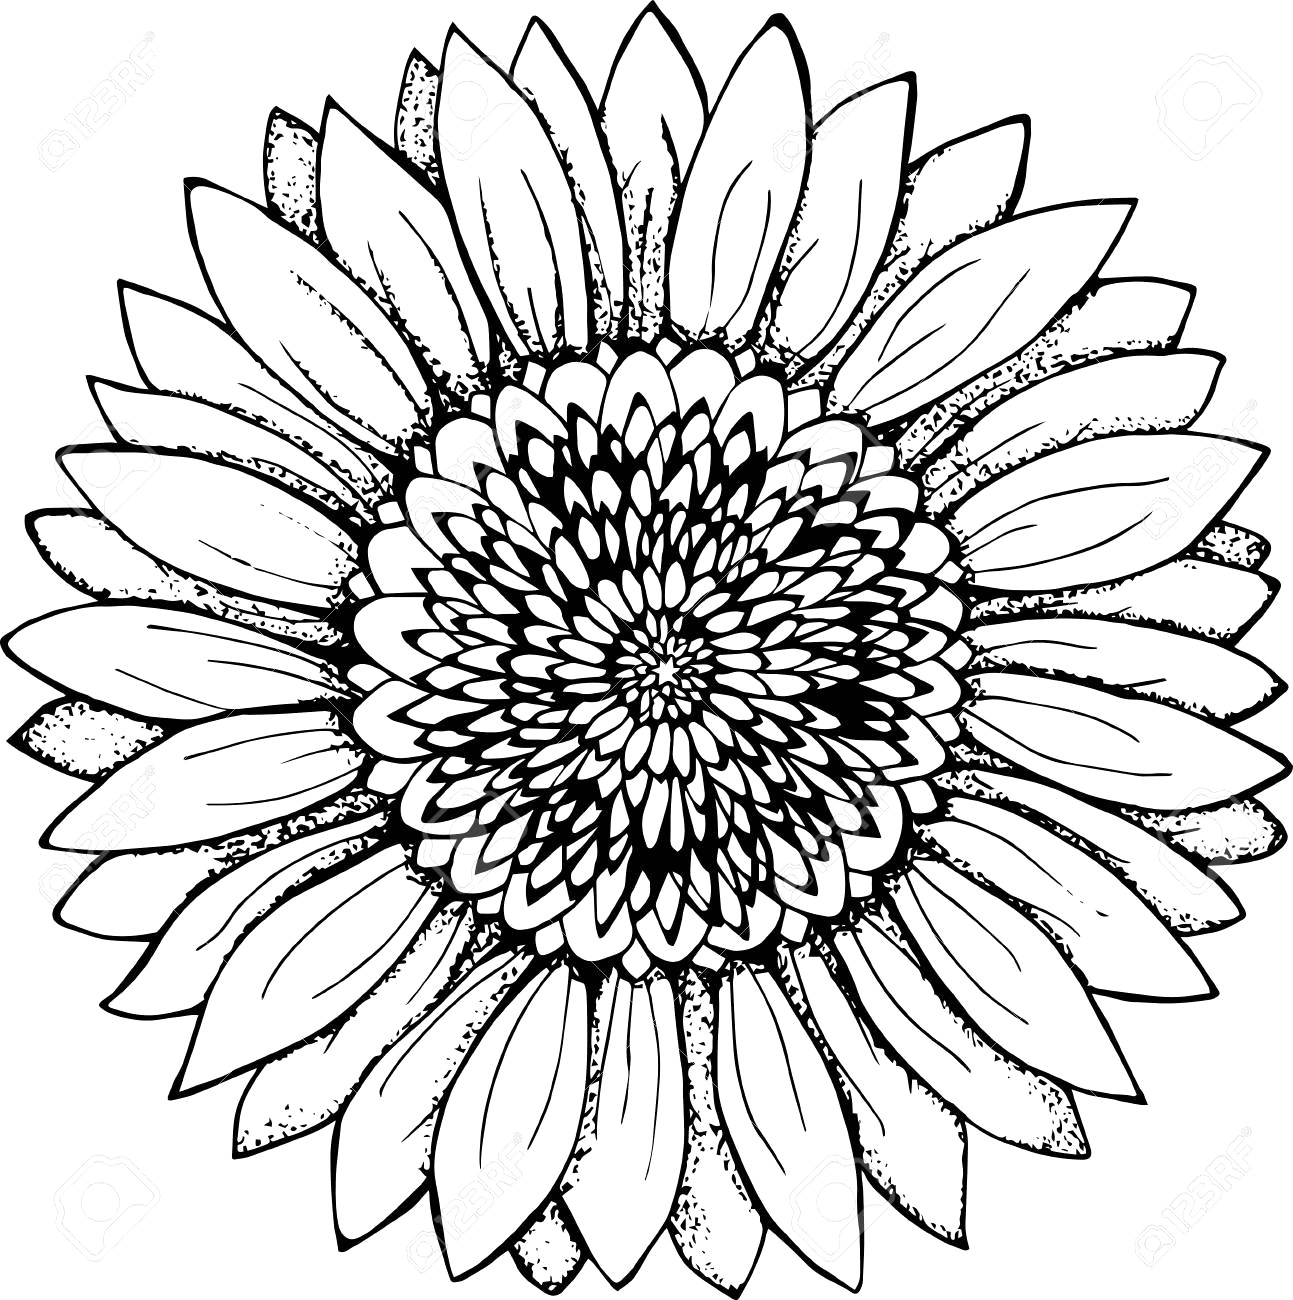 coloring outline images of flowers sunflower outline drawing at paintingvalleycom explore coloring outline of flowers images